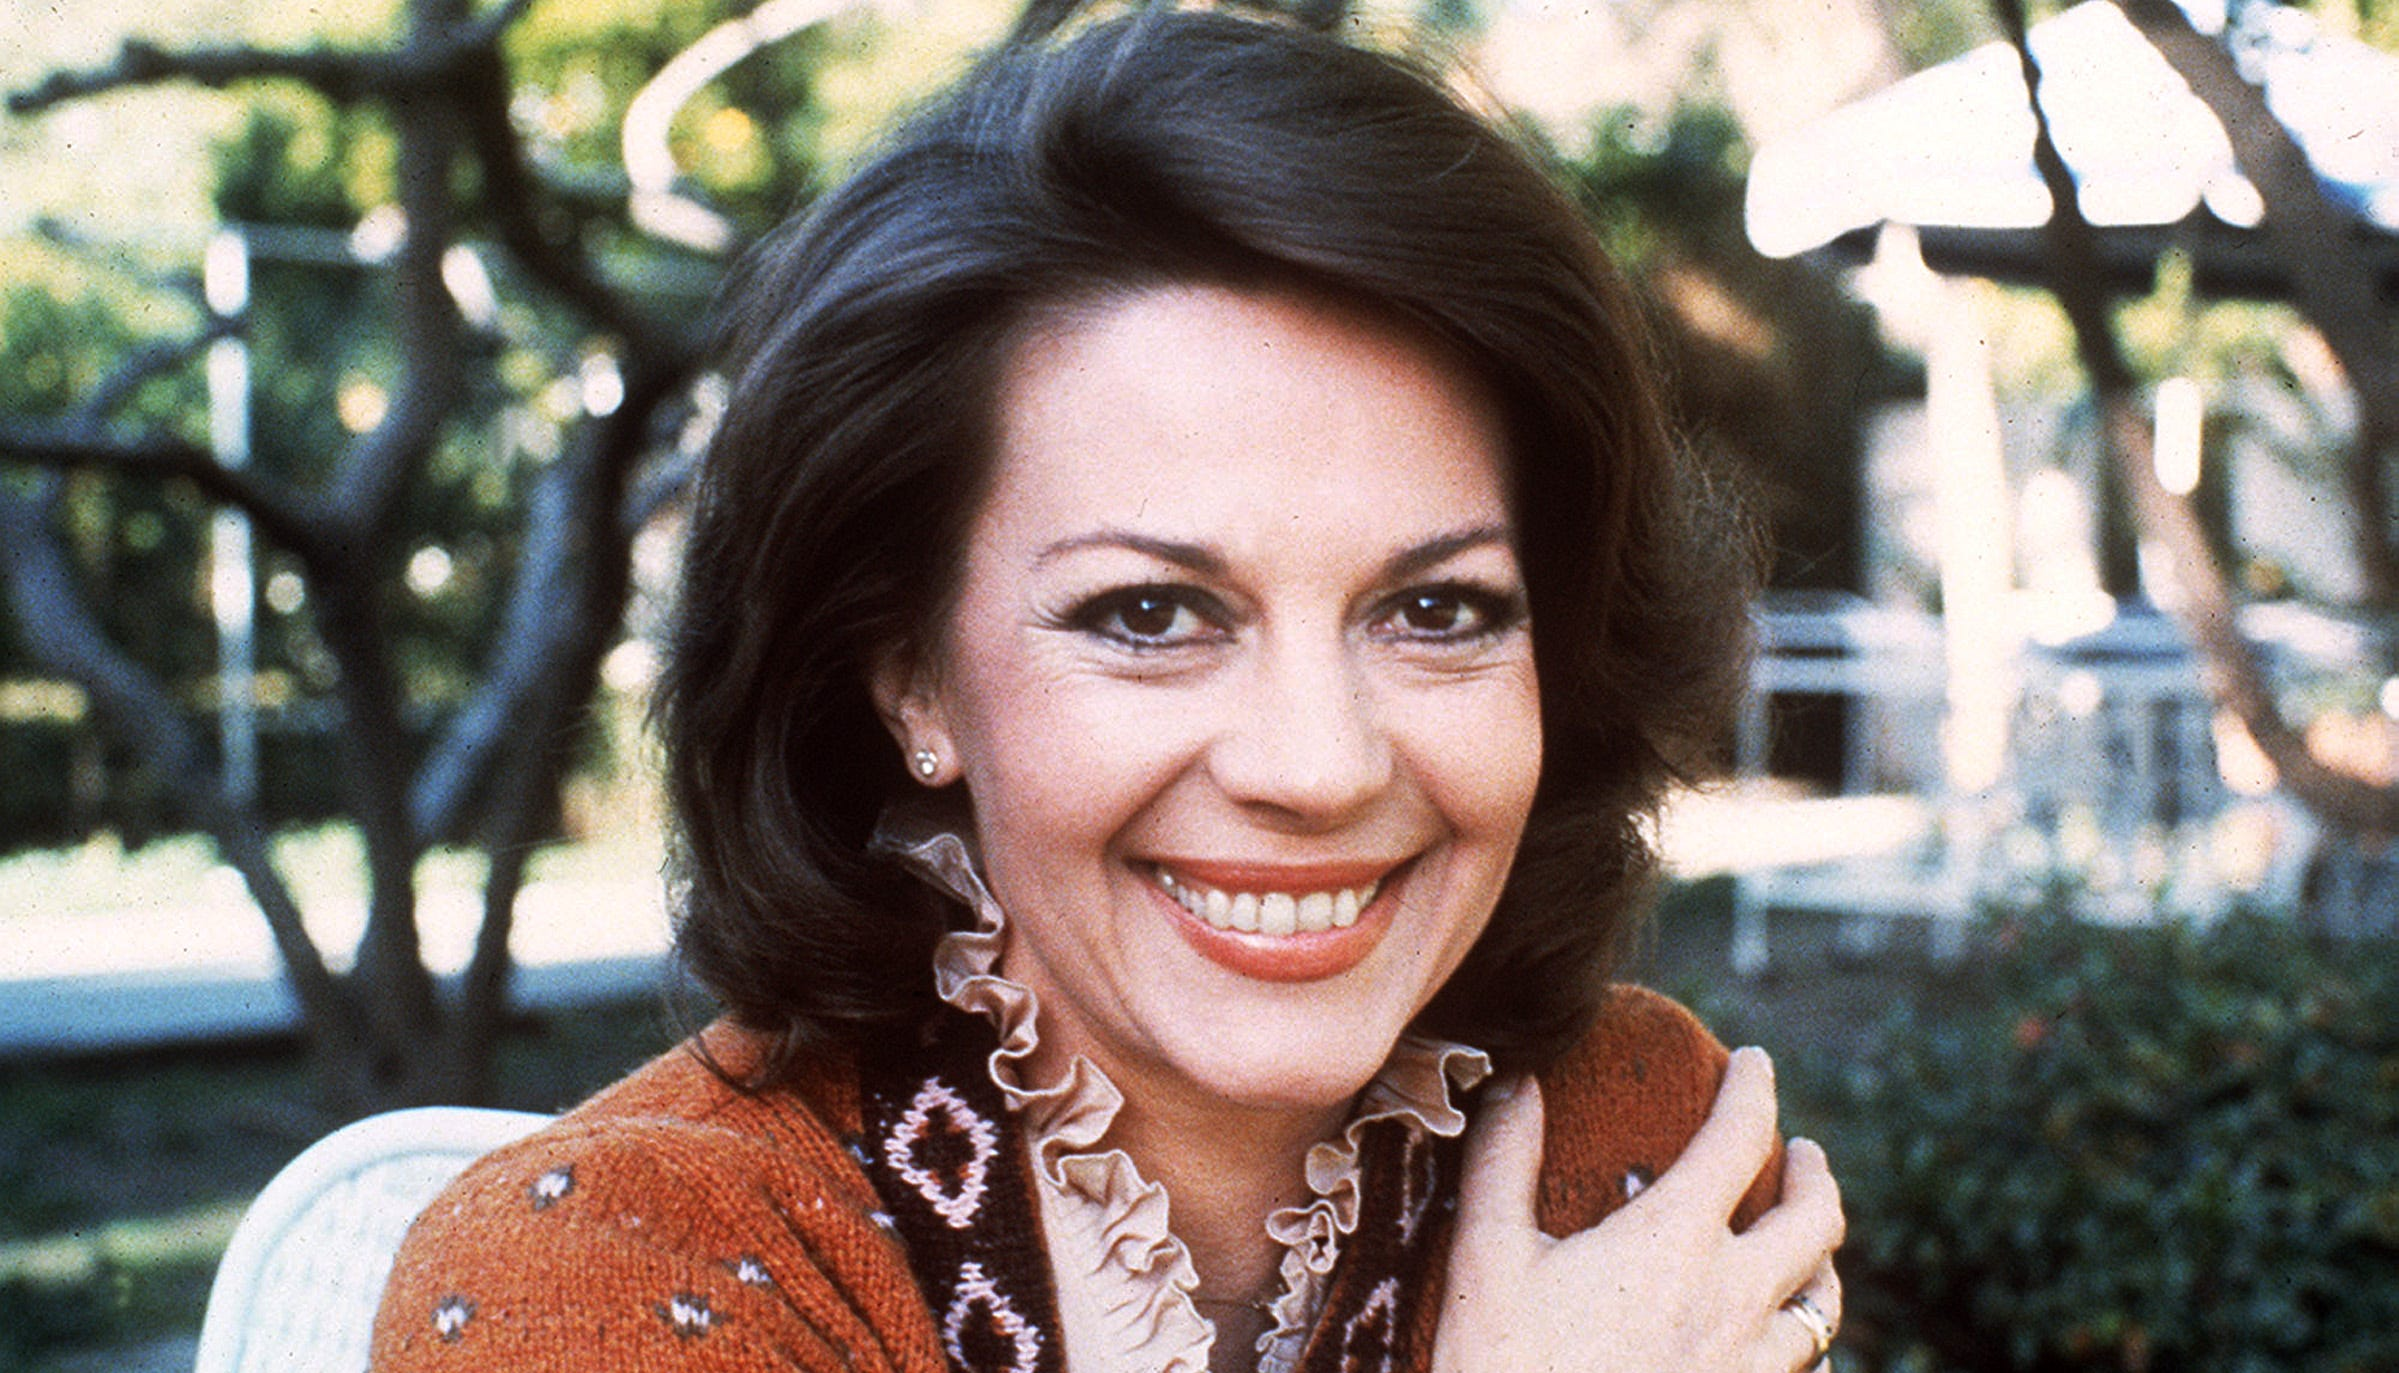 Natalie Wood's death: Here's why the decades-old case is making headlines again